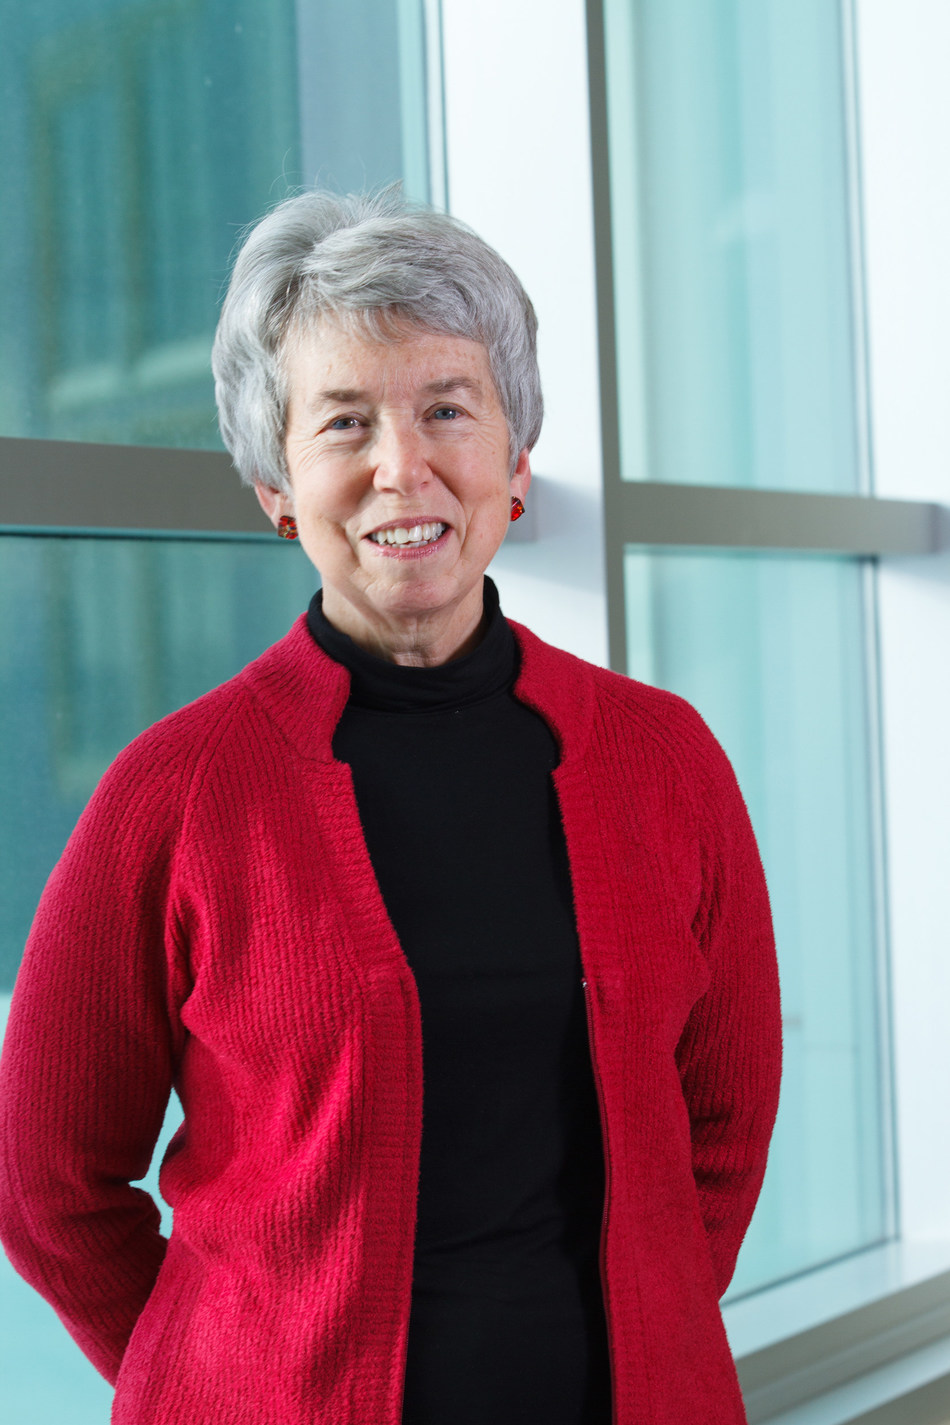 Dr. Bonnie J. Kaplan of the University of Calgary has been named winner of the 2019 Dr. Rogers Prize for Excellence in Complementary and Alternative Medicine - a $250,000 cash prize. (CNW Group/DR. ROGERS PRIZE)